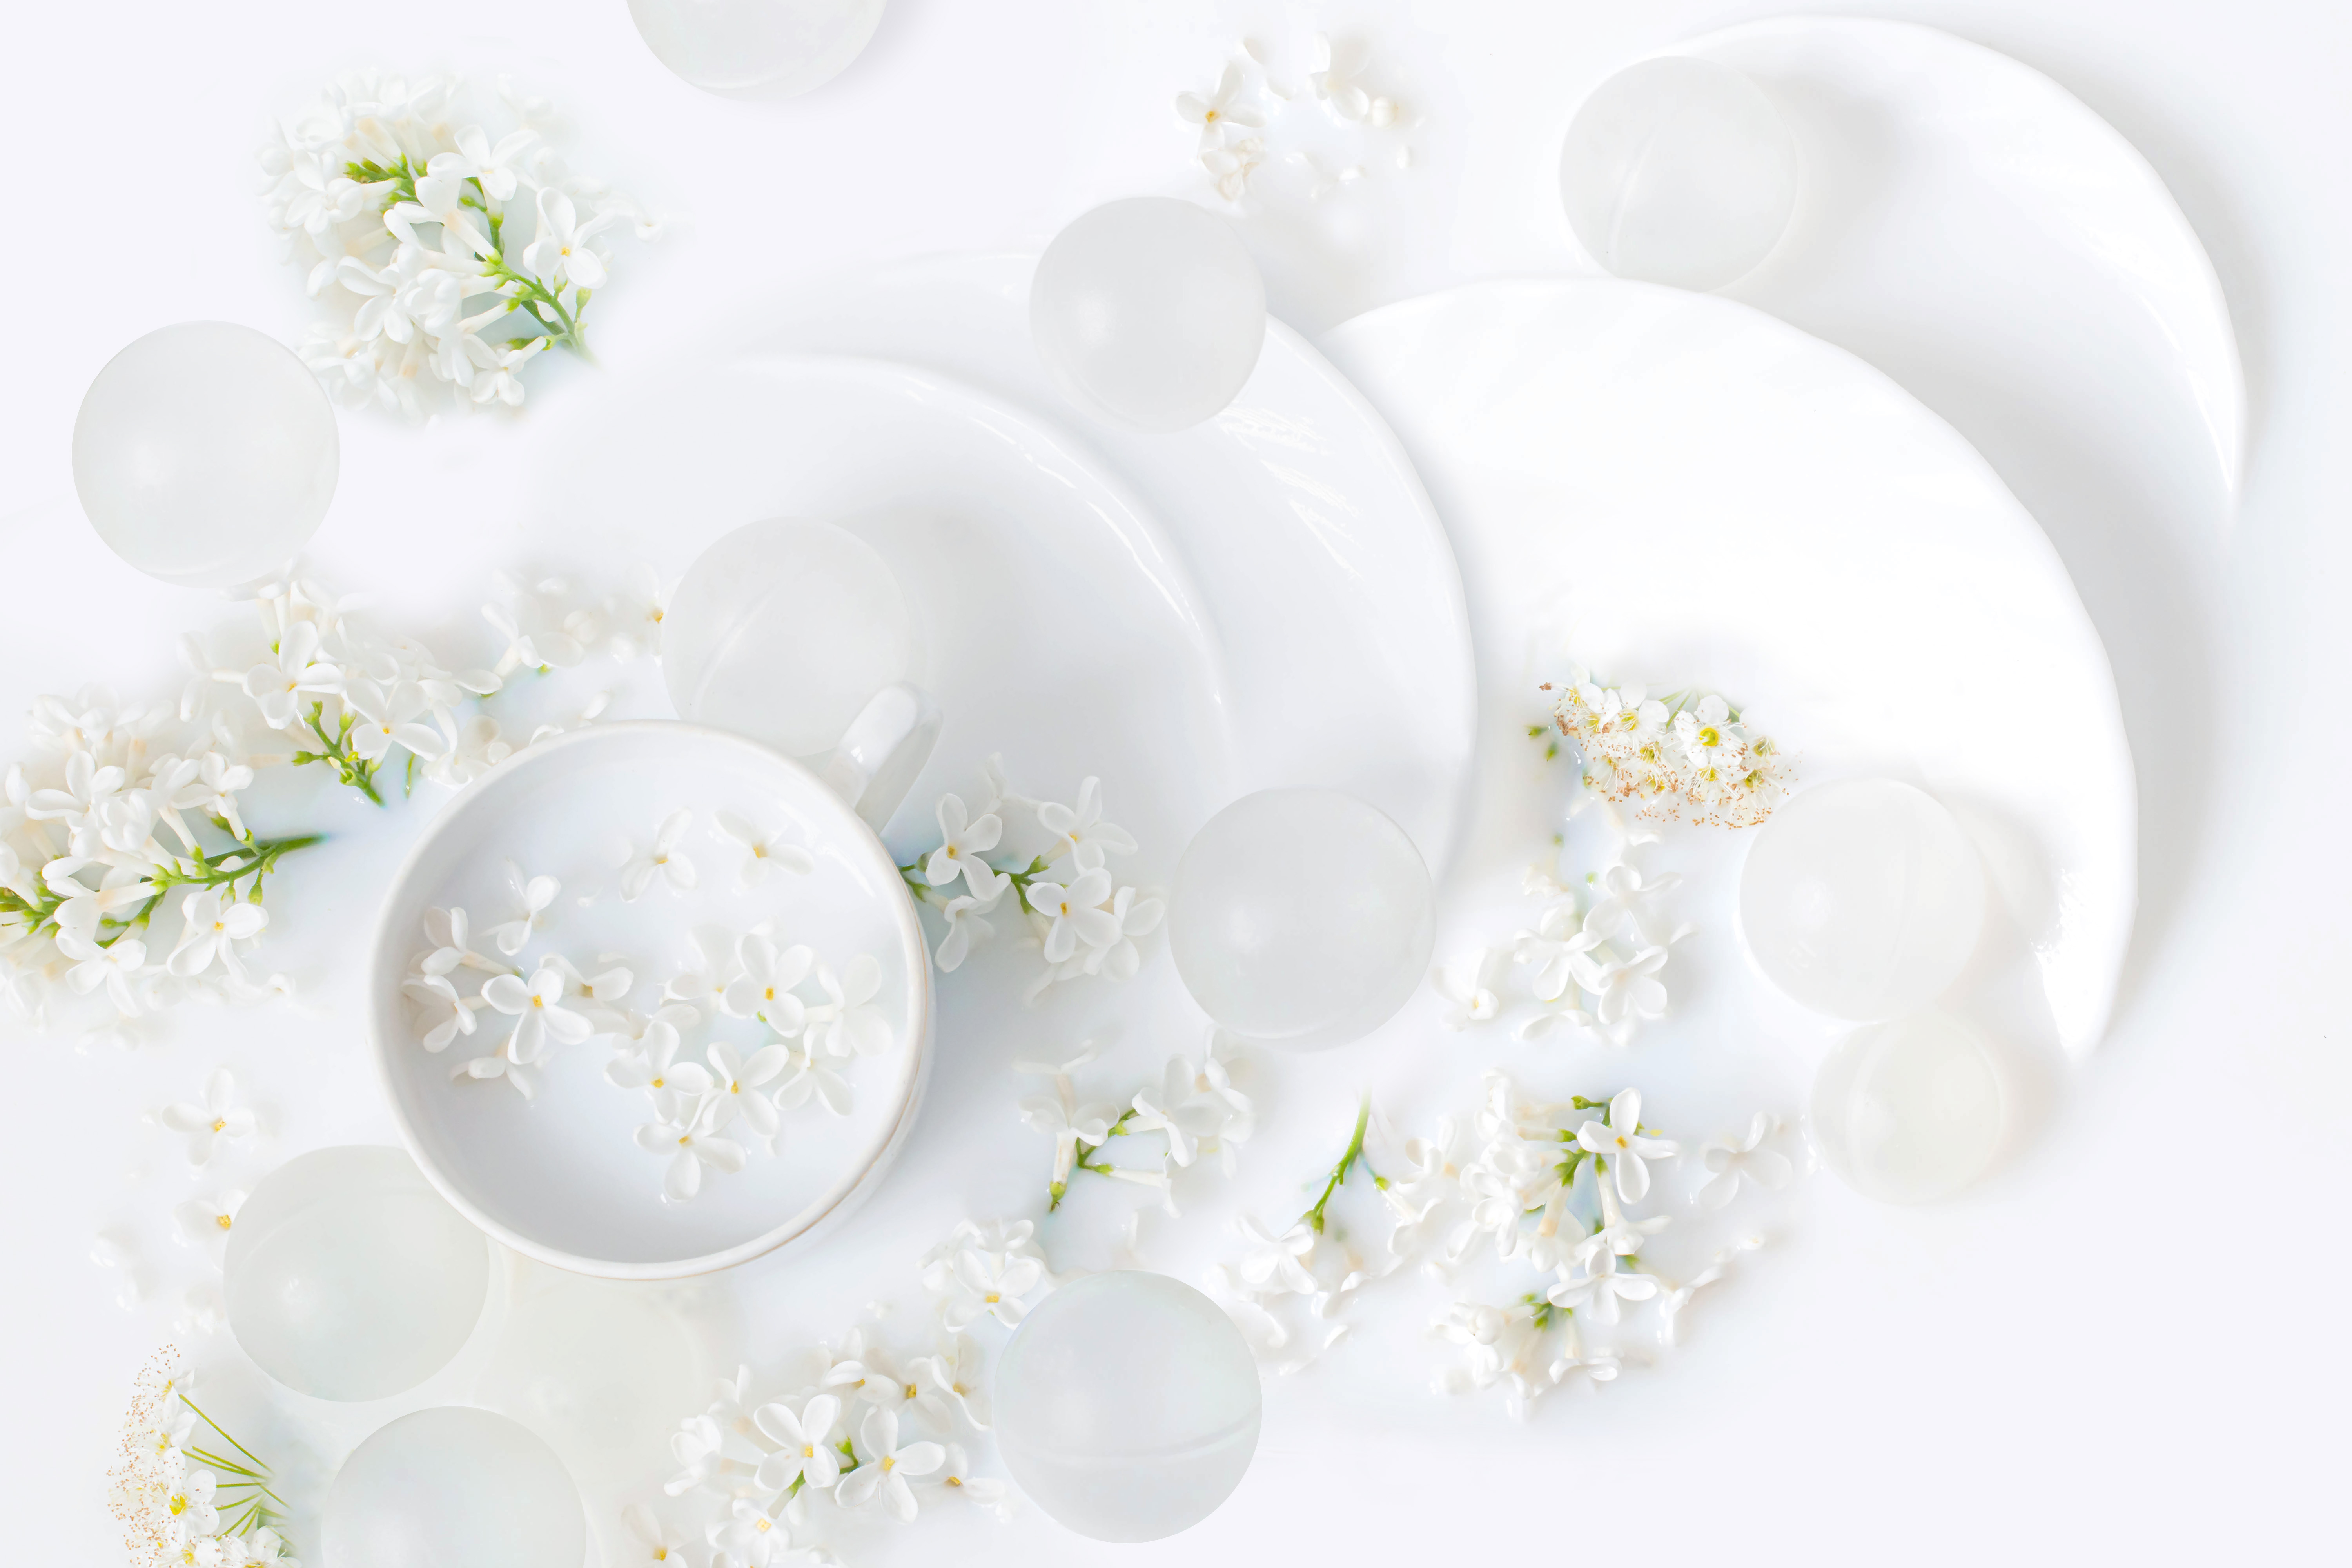 Flowers of white lilac and tea utensils in milk